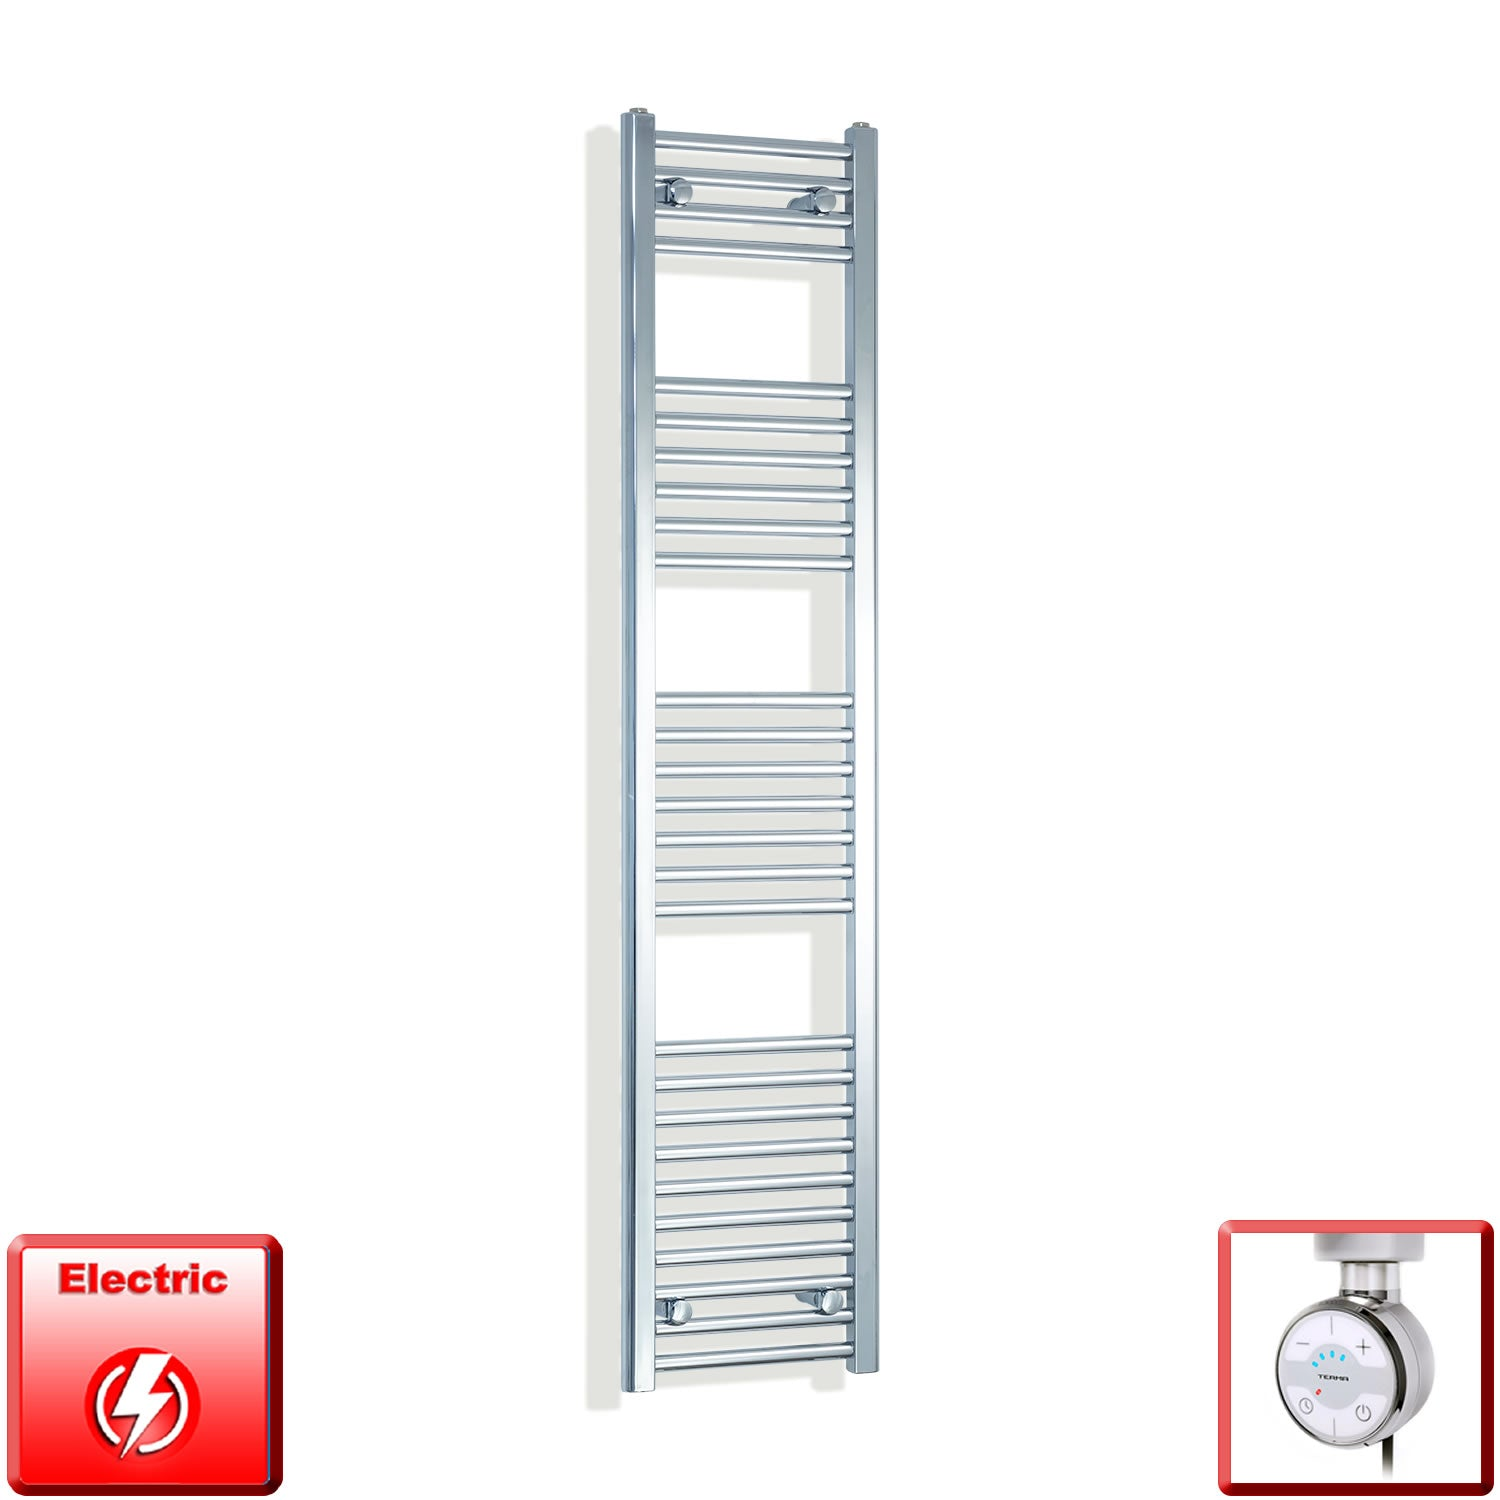 350mm Wide 1600mm High Pre-Filled Chrome Electric Towel Rail Radiator With Thermostatic MOA Element